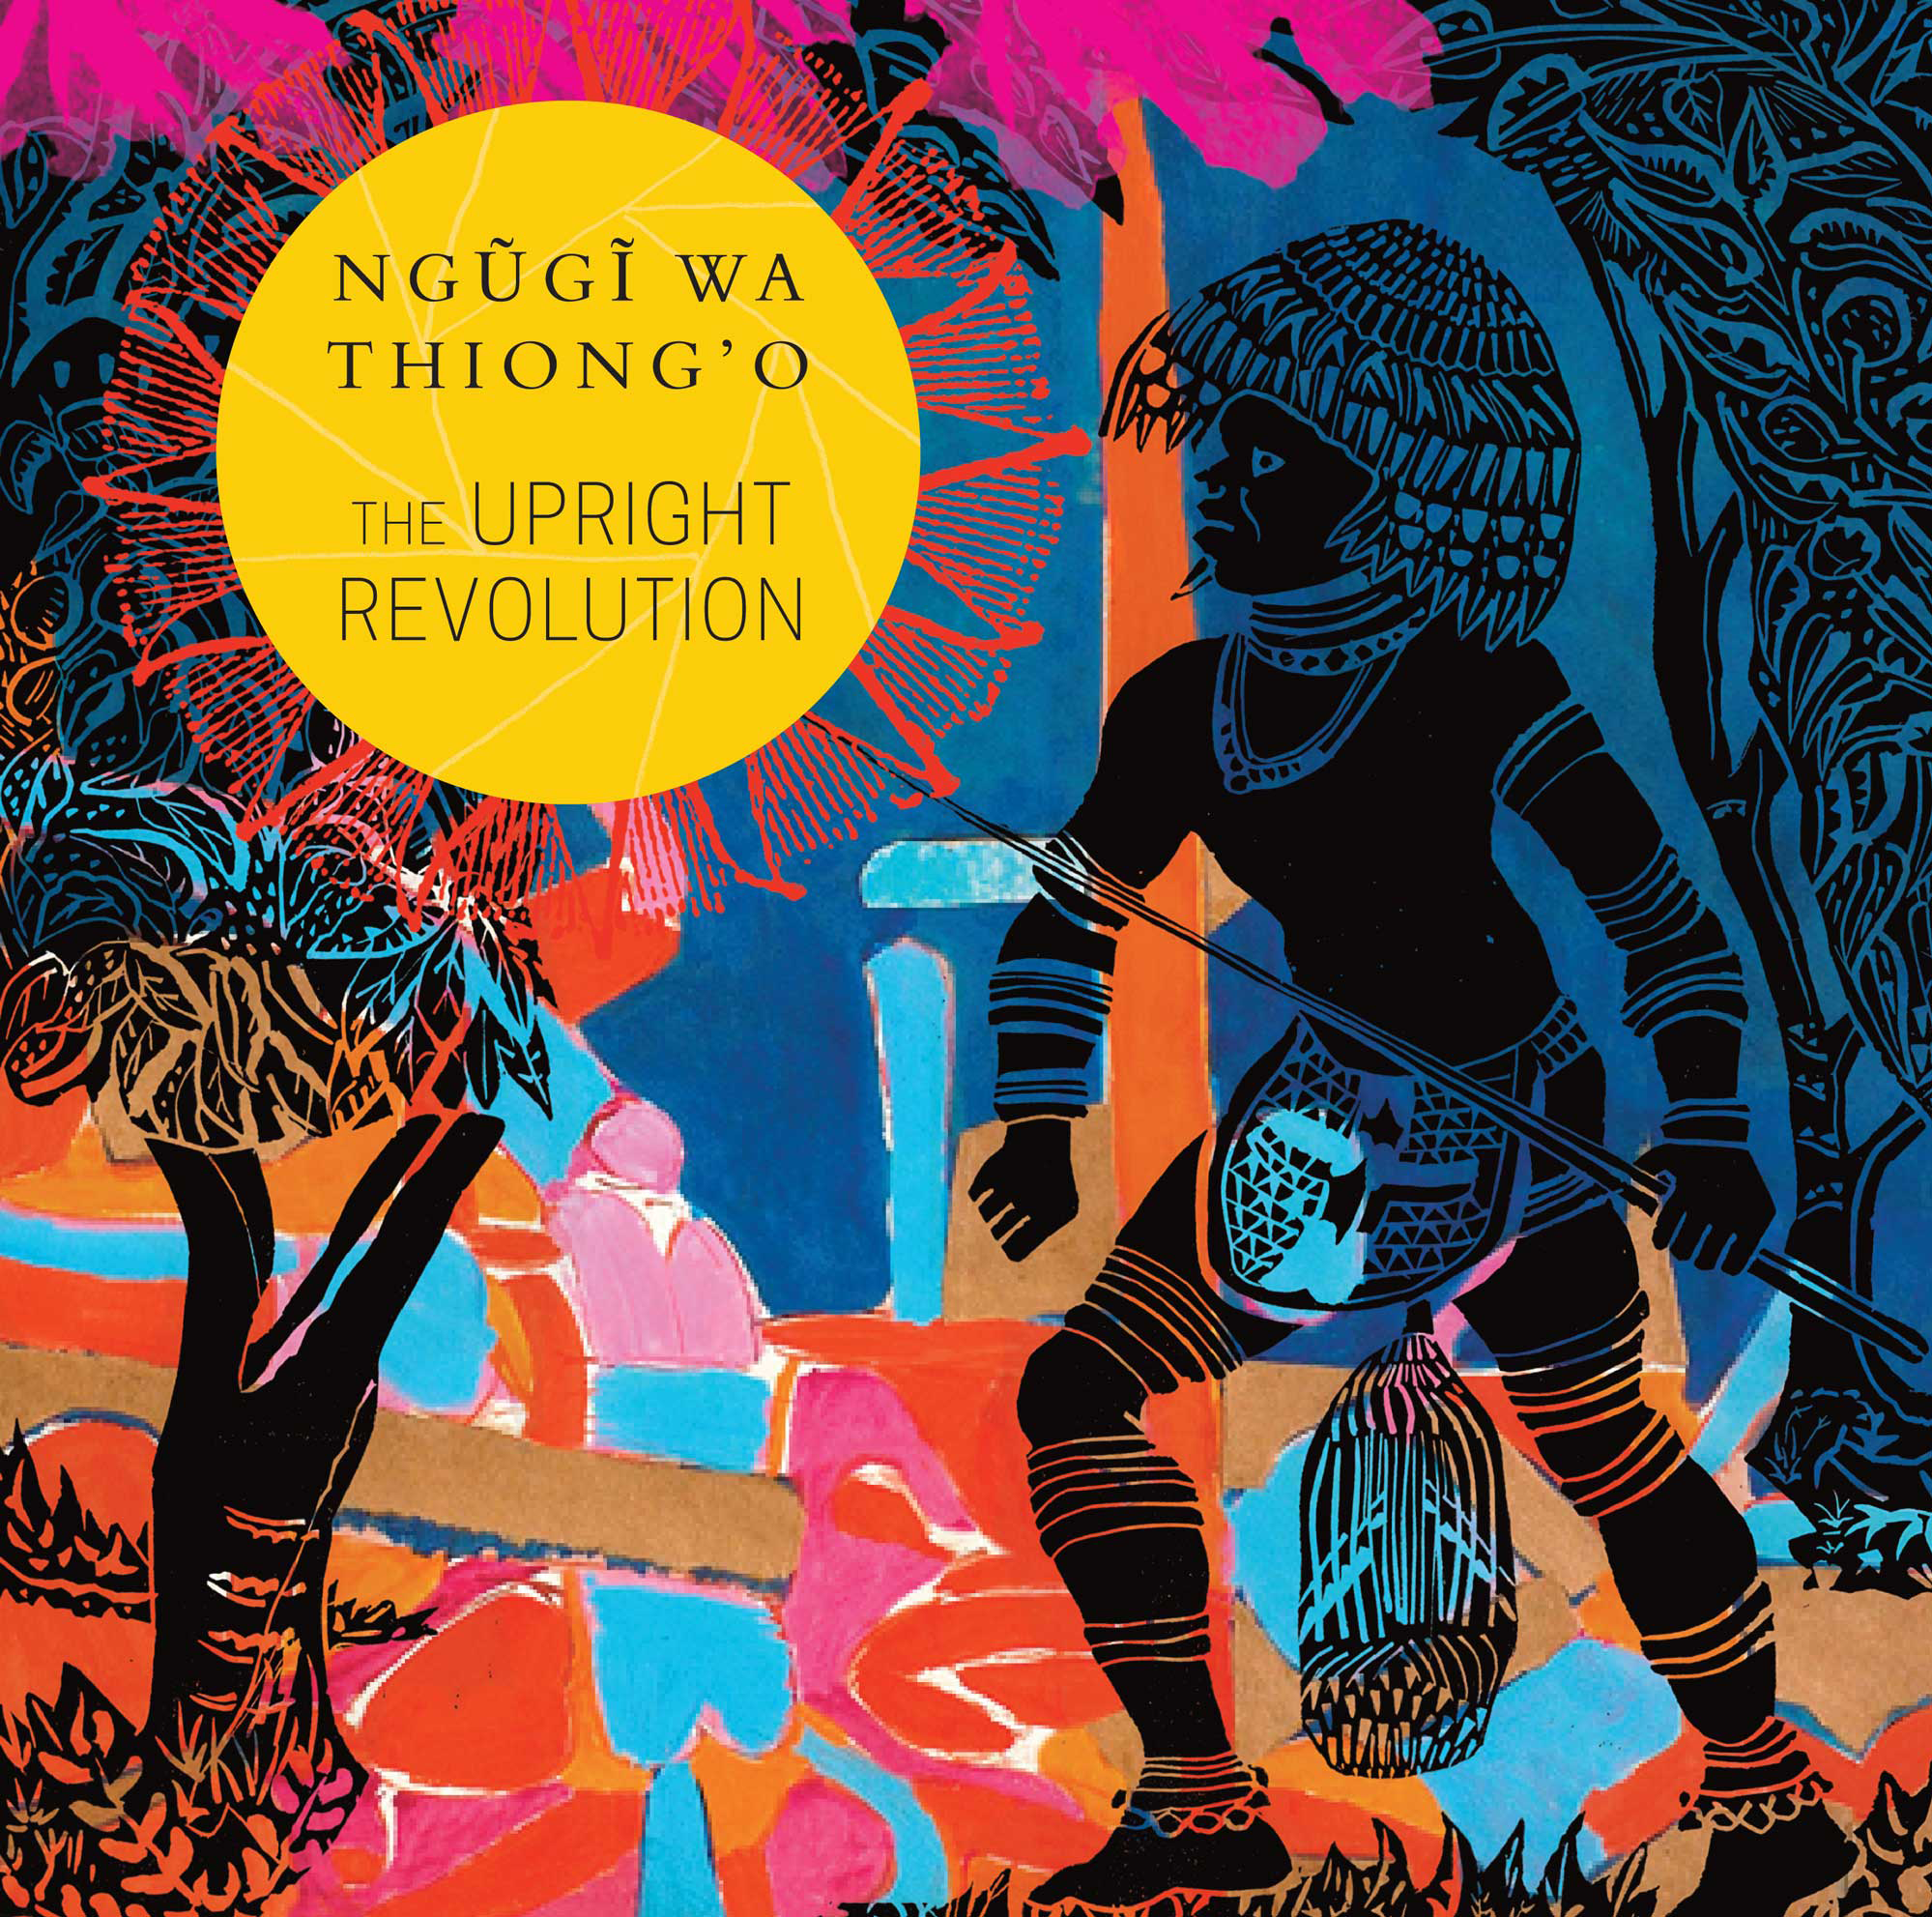 The Upright Revolution: Or Why Humans Walk Upright by Ngũgĩ wa Thiong'o |  Seagull Books